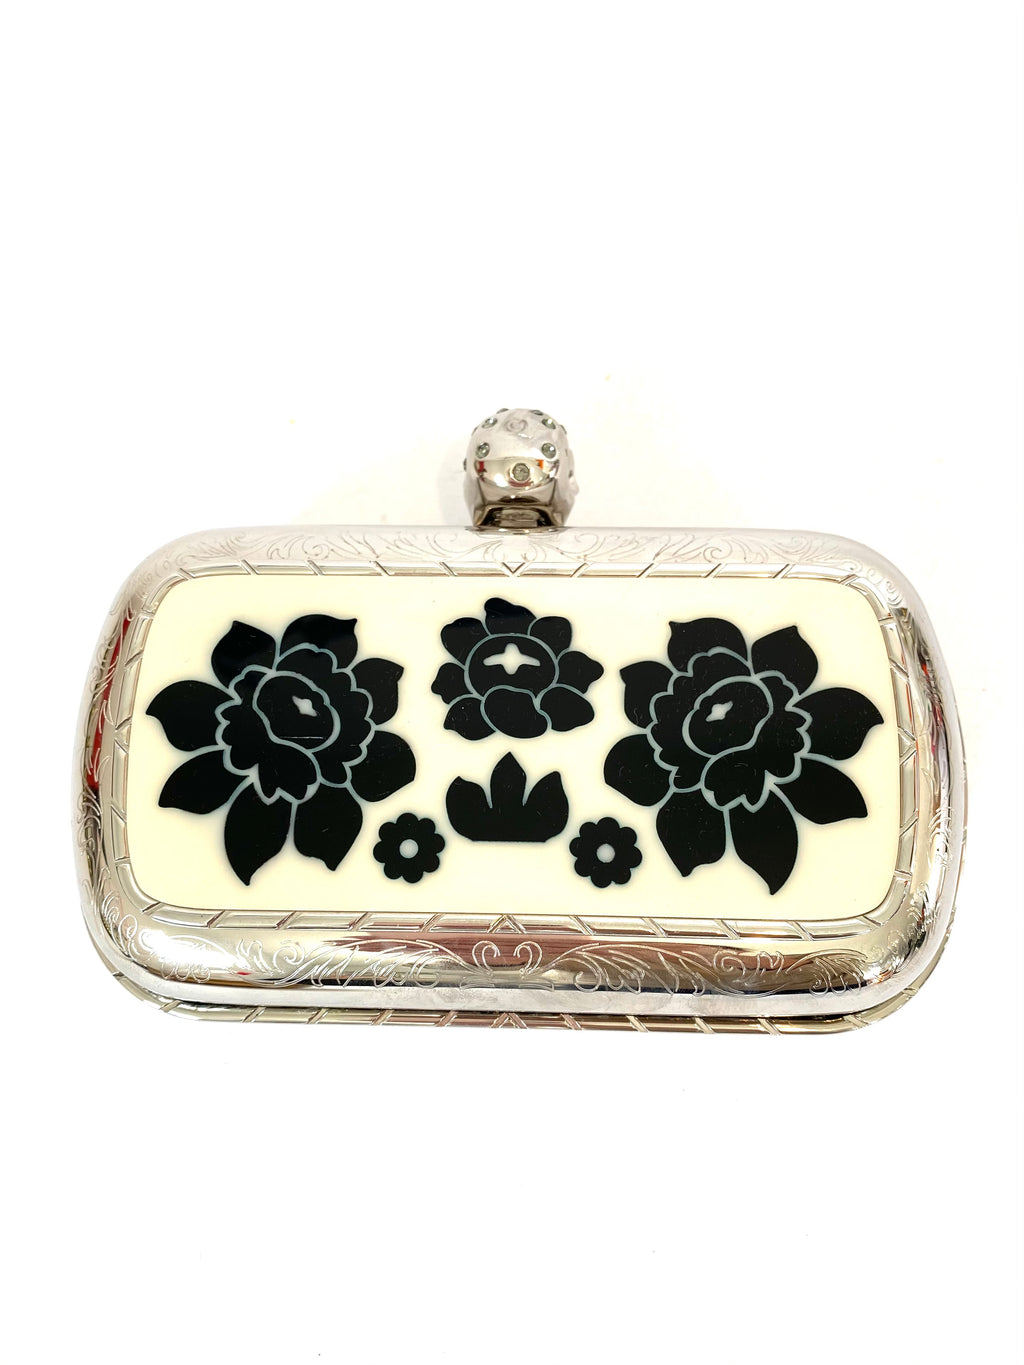 Alexander McQueen Silver Skull Clutch with Floral Inlay